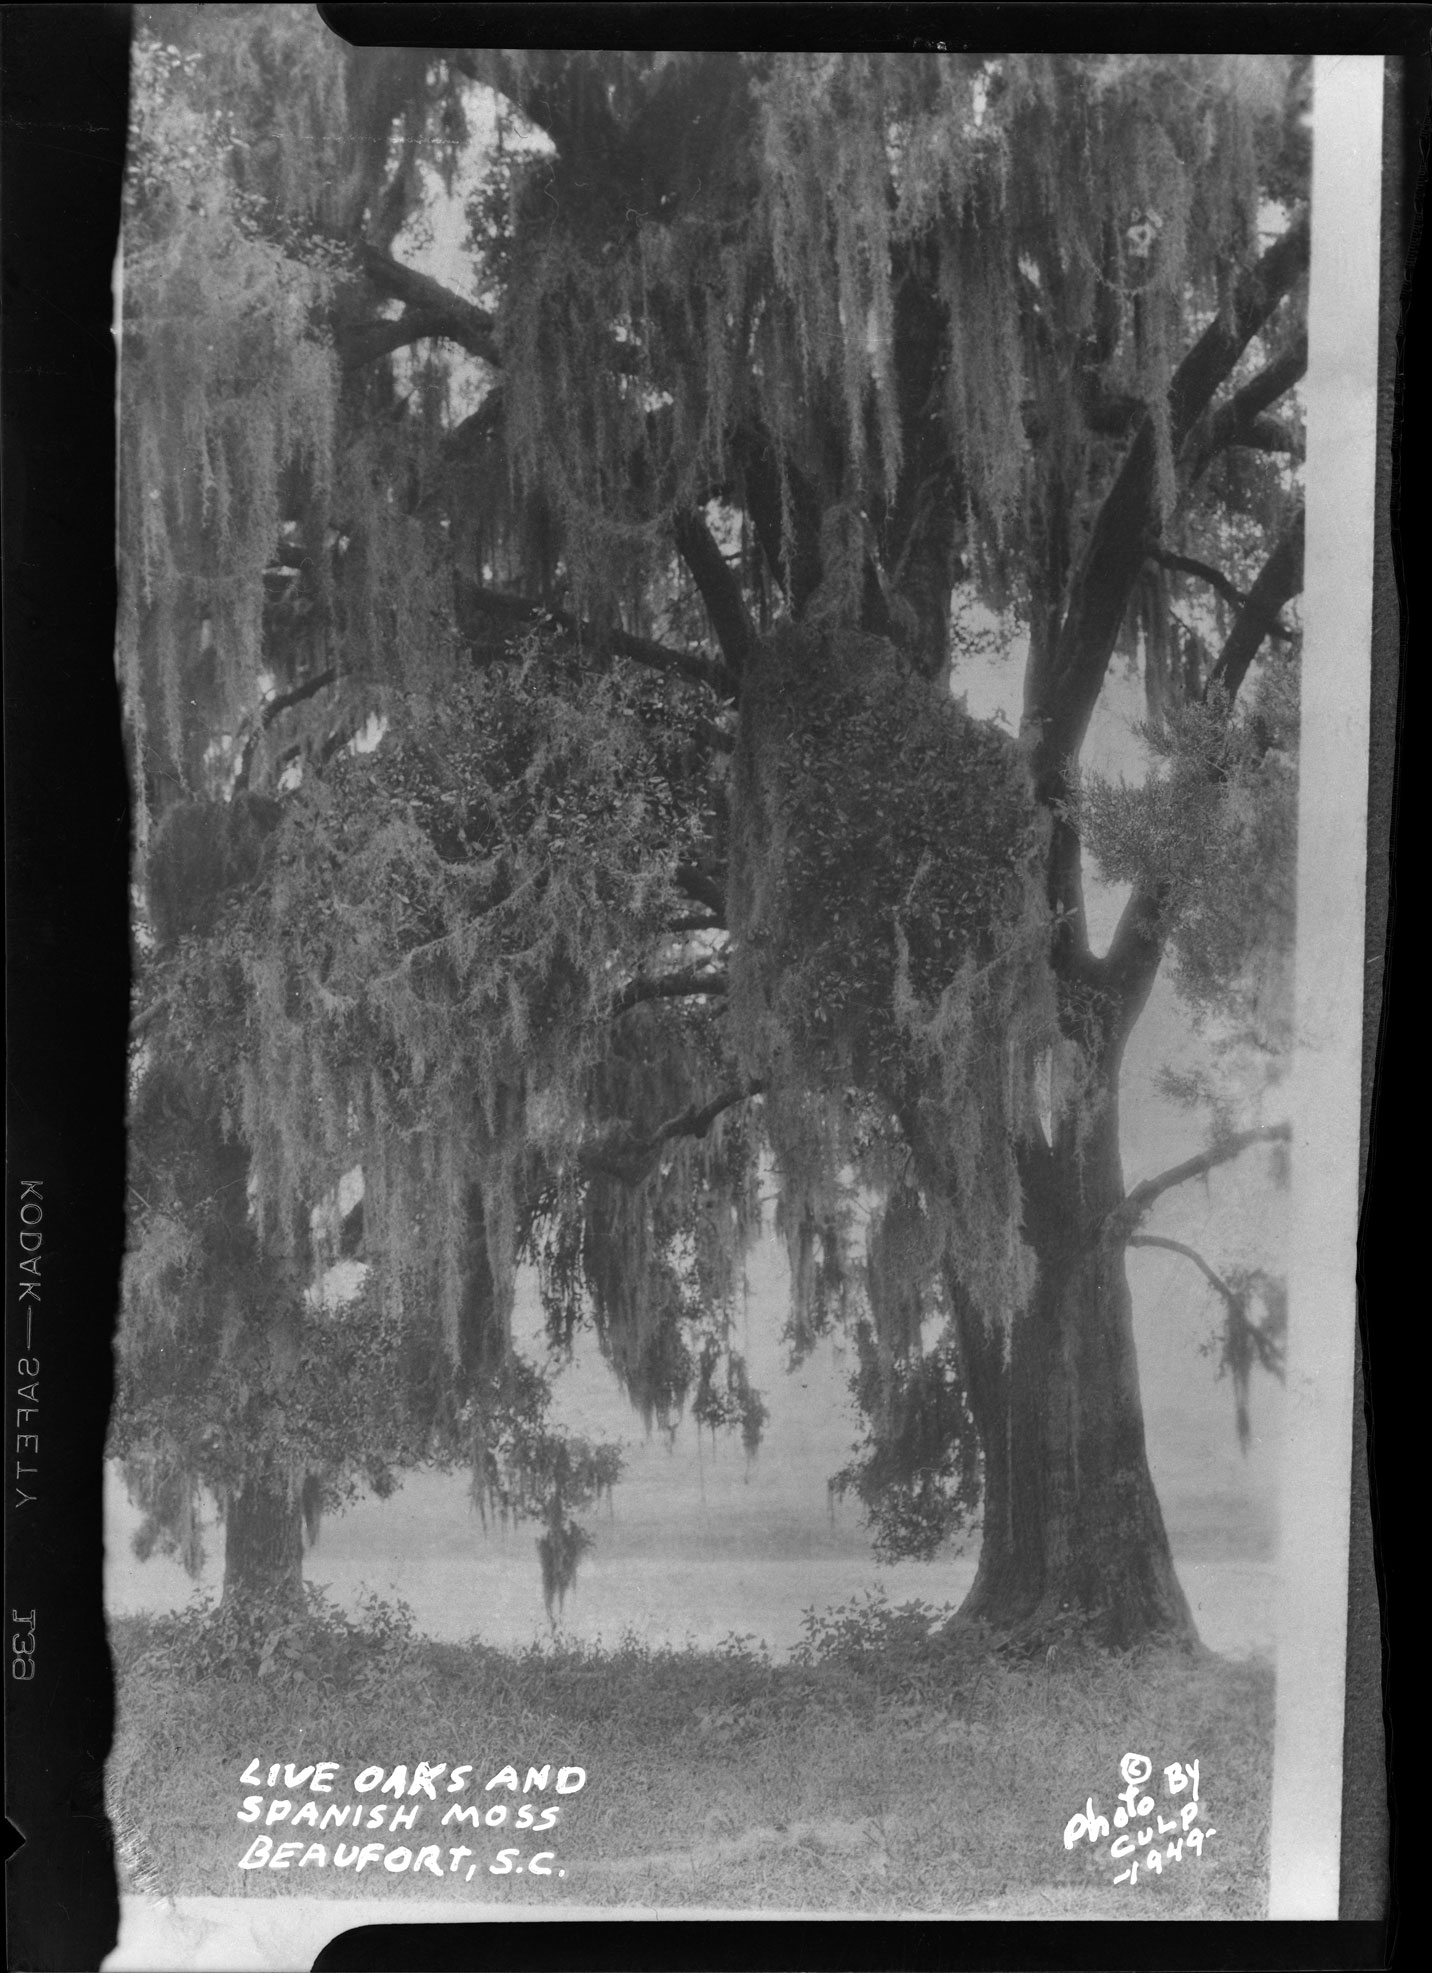 Live Oaks and Spanish Moss Beaufort, S.C.